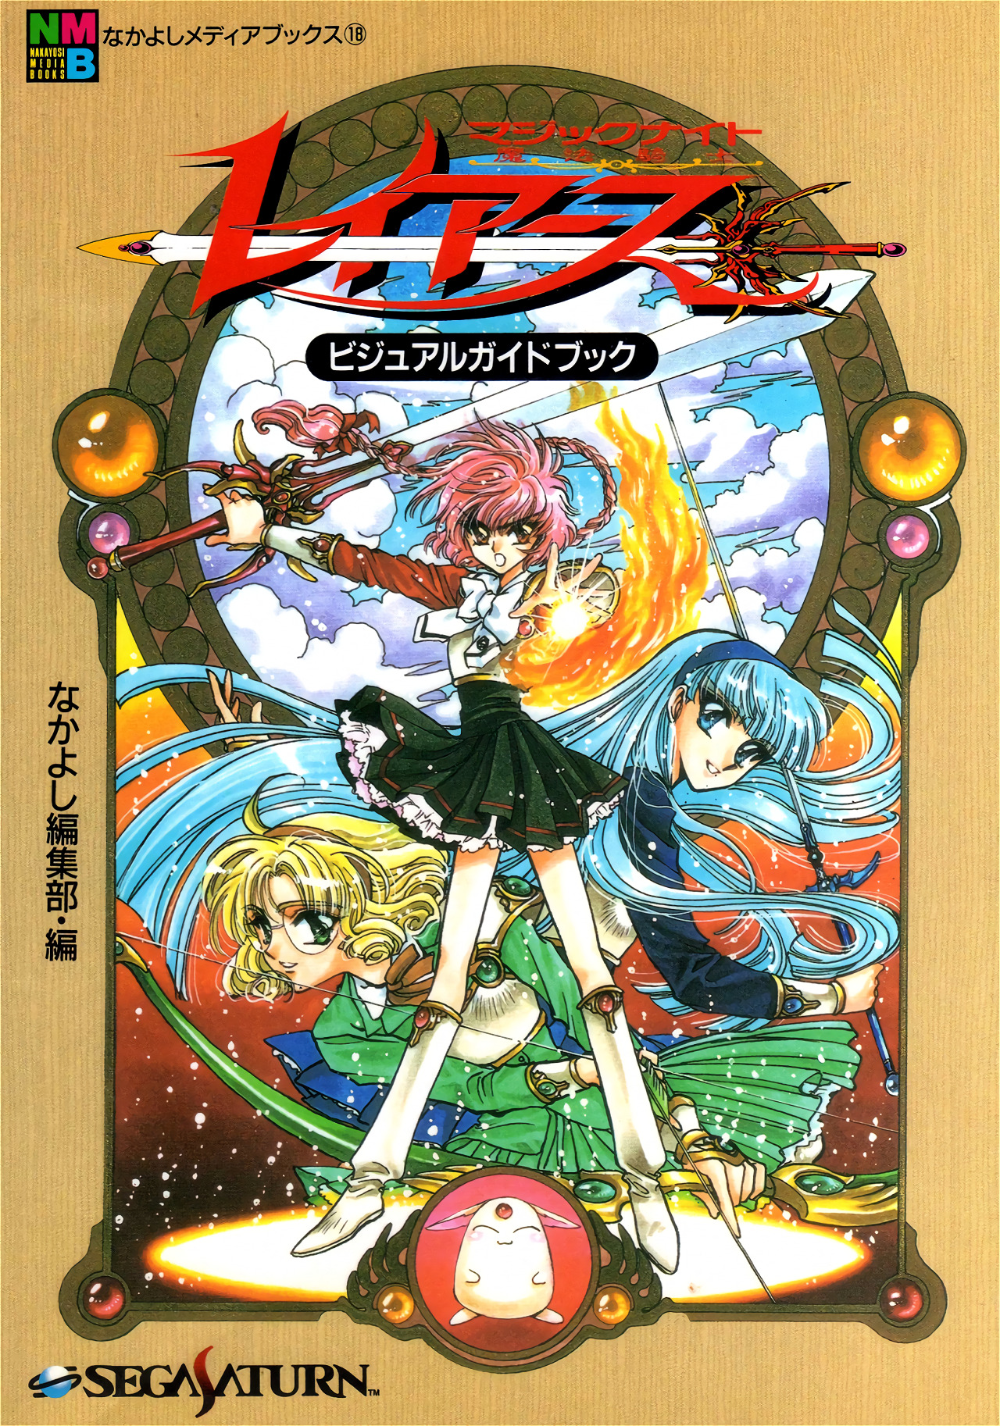 Pin by Skyisthebest on Anime in 2020 Saturn art, Magic